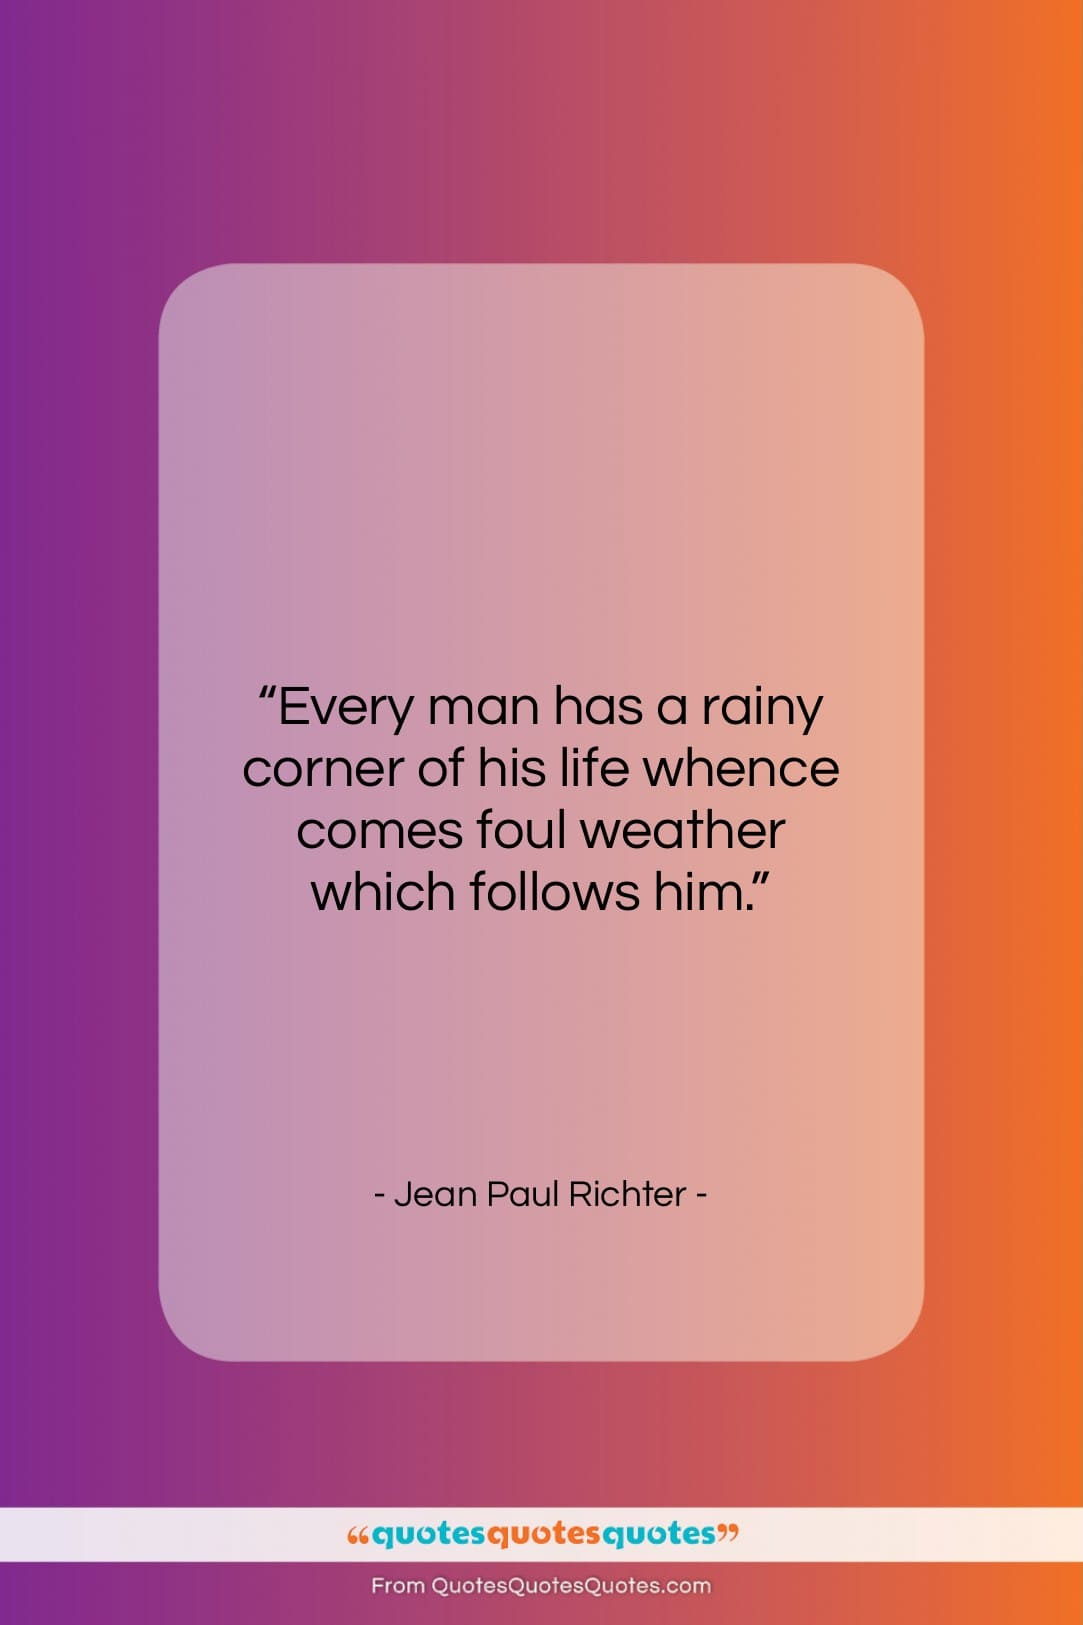 """Jean Paul Richter quote: """"Every man has a rainy corner of…""""- at QuotesQuotesQuotes.com"""